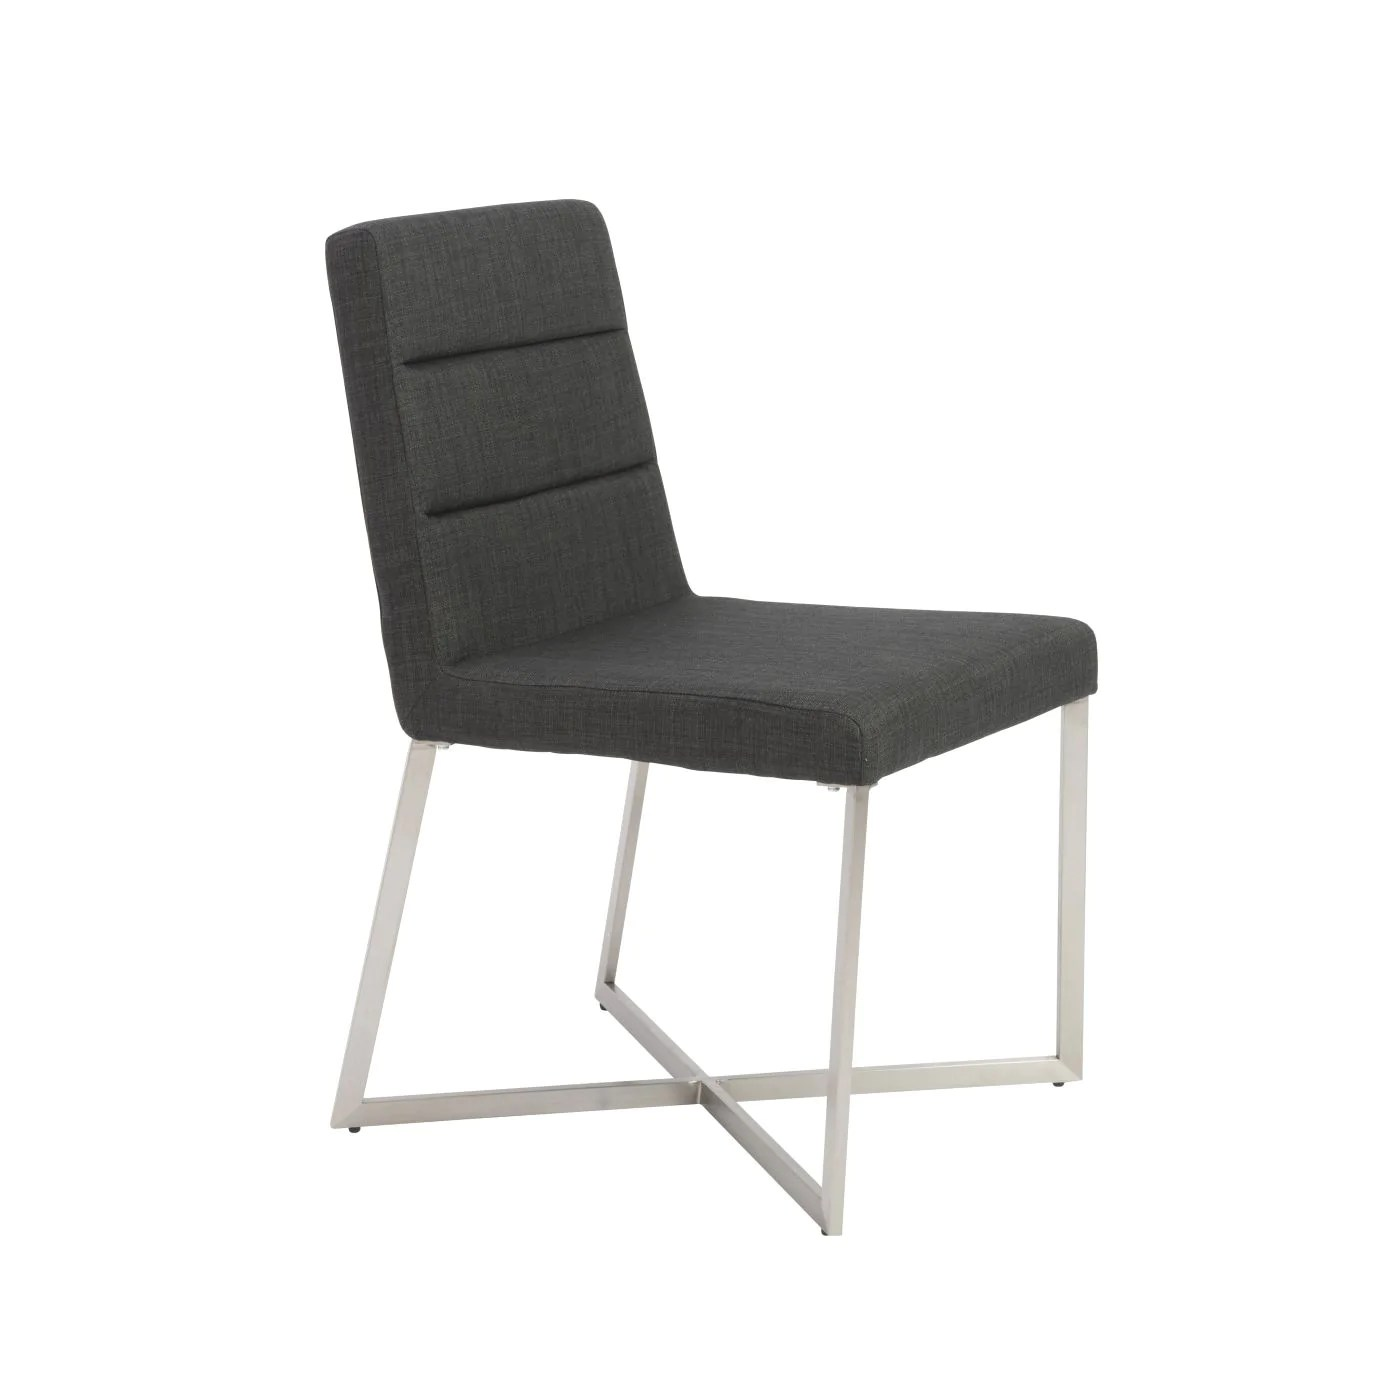 dining chairs with stainless steel legs sofa loveseat and chair euro style 38619char tosca in charcoal